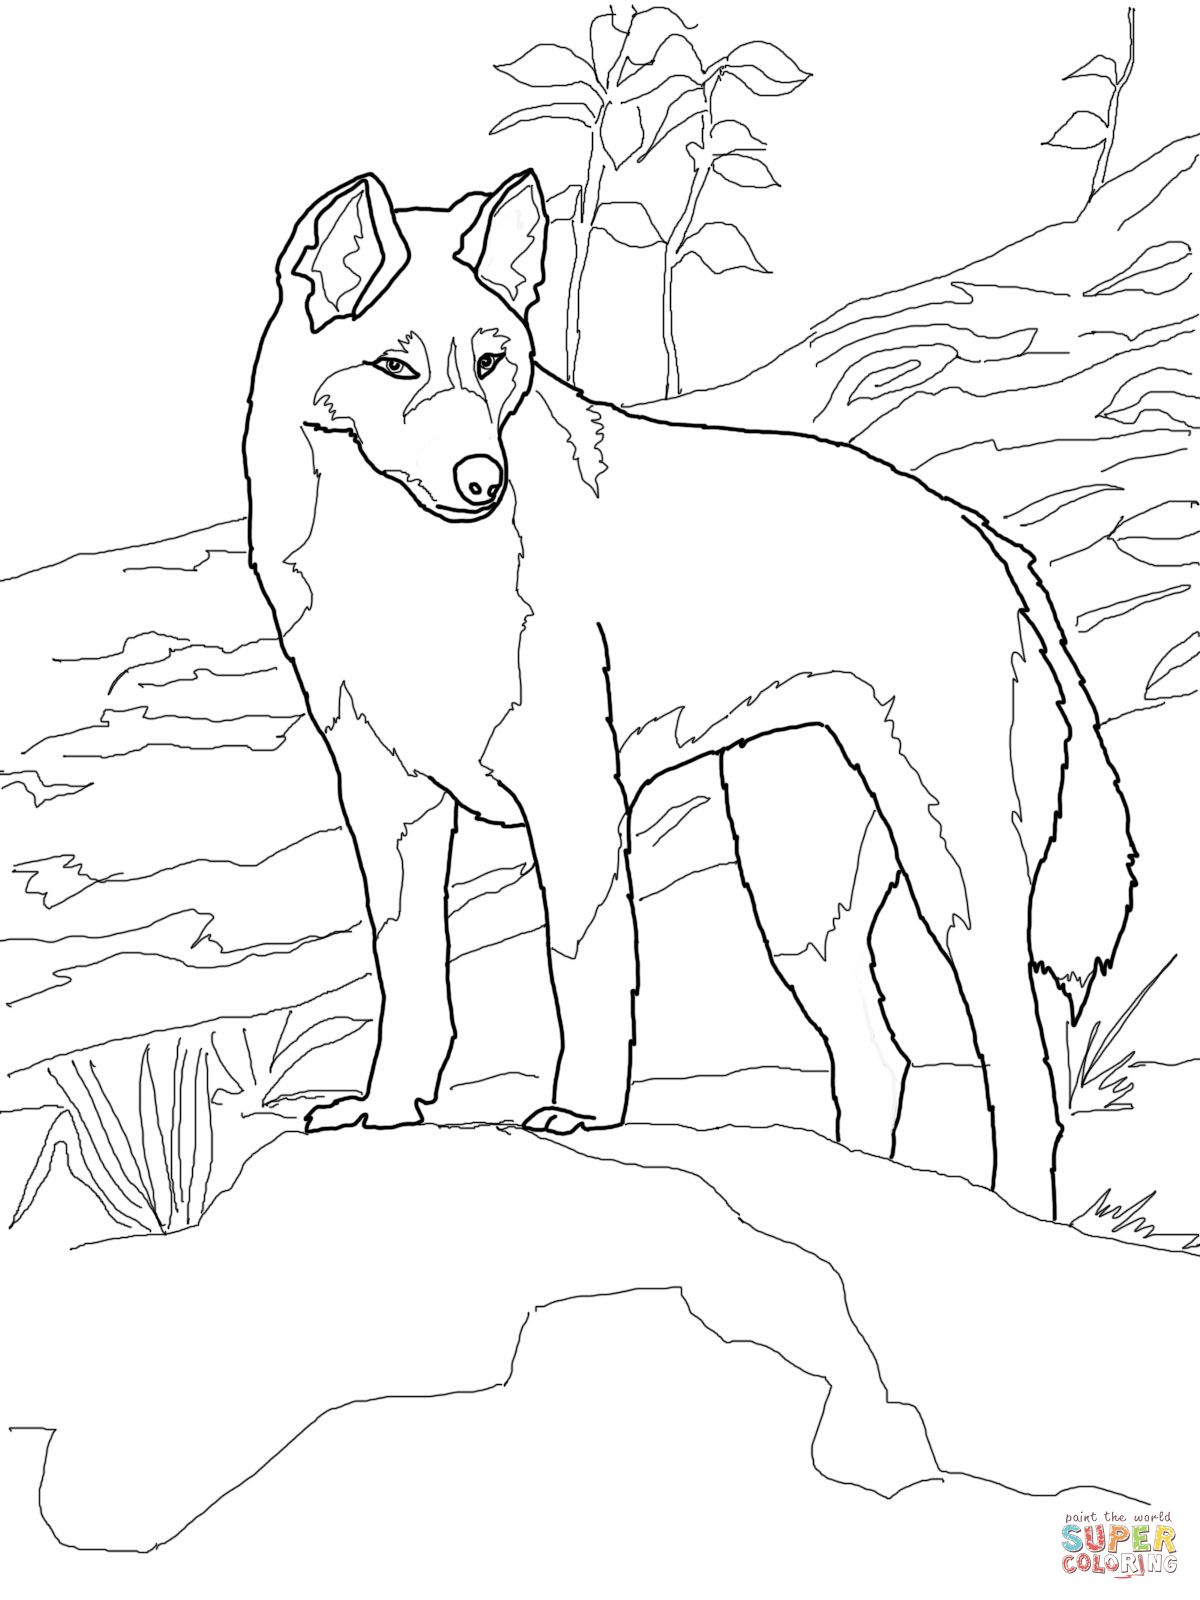 Dingo From Australia Coloring Page Supercoloring Com Zoo Animal Coloring Pages Animal Coloring Pages Farm Animal Coloring Pages